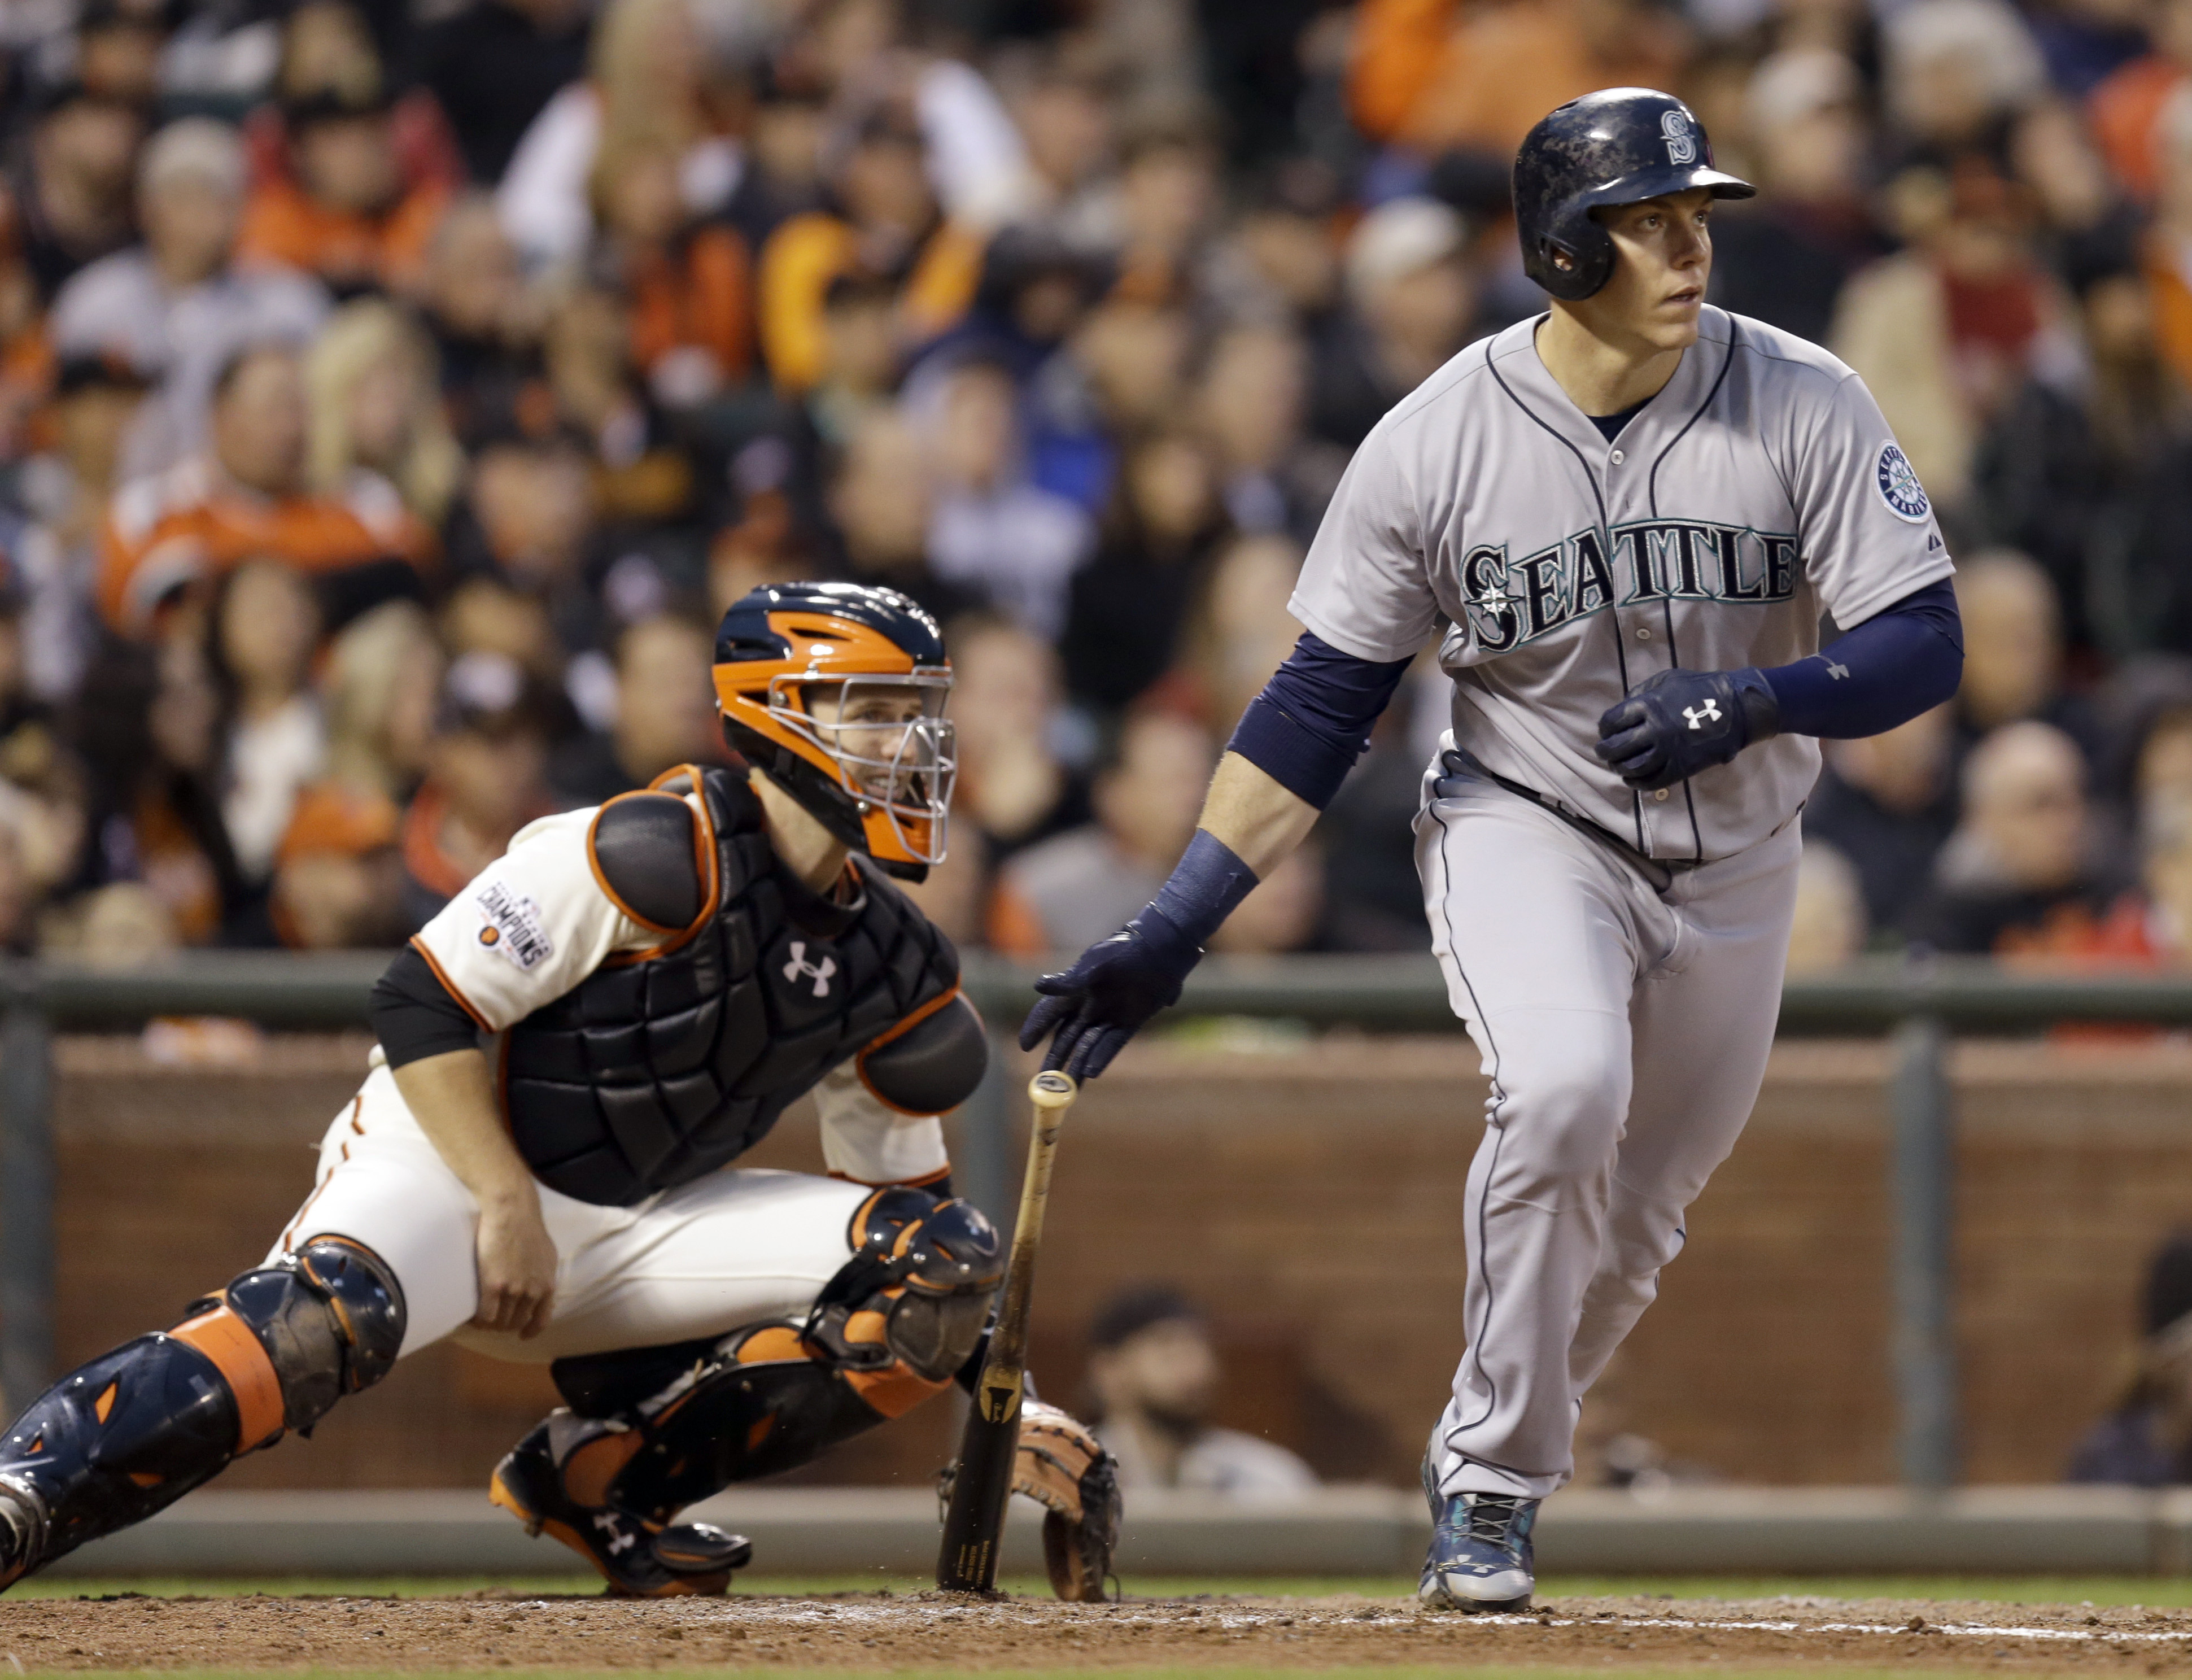 Seattle Mariners' Logan Morrison drops his bat after hitting an RBI single off San Francisco Giants' Tim Hudson during the fifth inning of a baseball game Monday, June 15, 2015, in San Francisco. (AP Photo/Ben Margot)